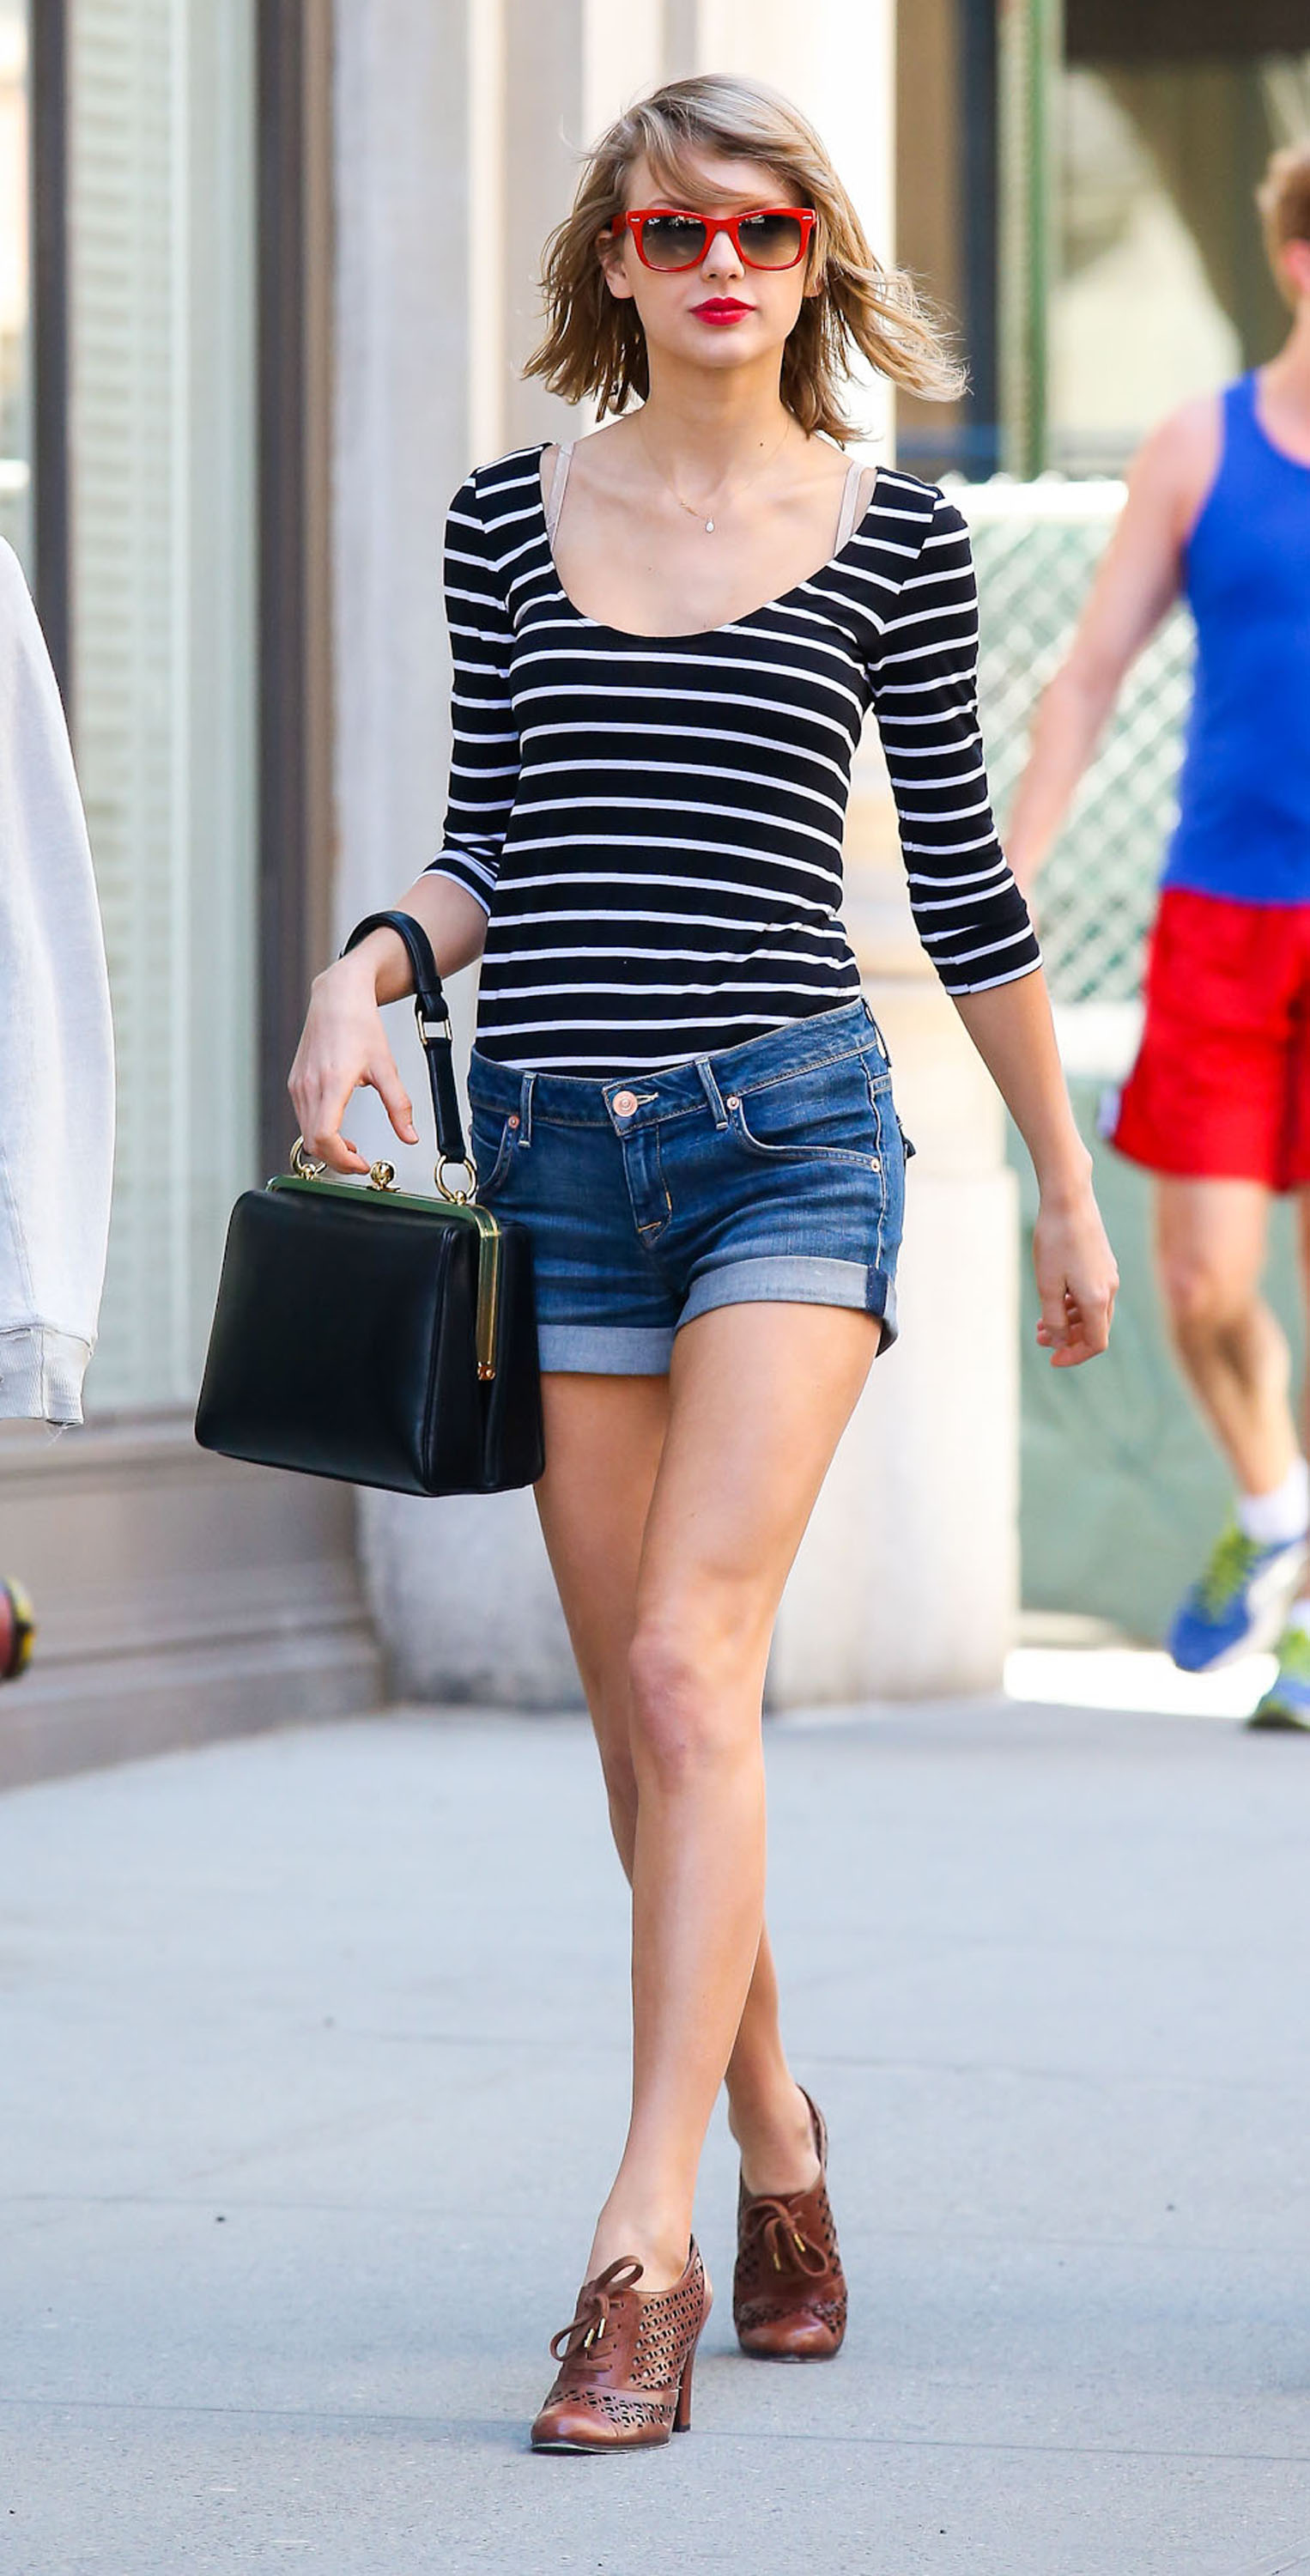 51381782 Singer Taylor Swift and a friend spotted out and about in New York City, New York on April 12, 2014. FameFlynet, Inc - Beverly Hills, CA, USA - +1 (818) 307-4813